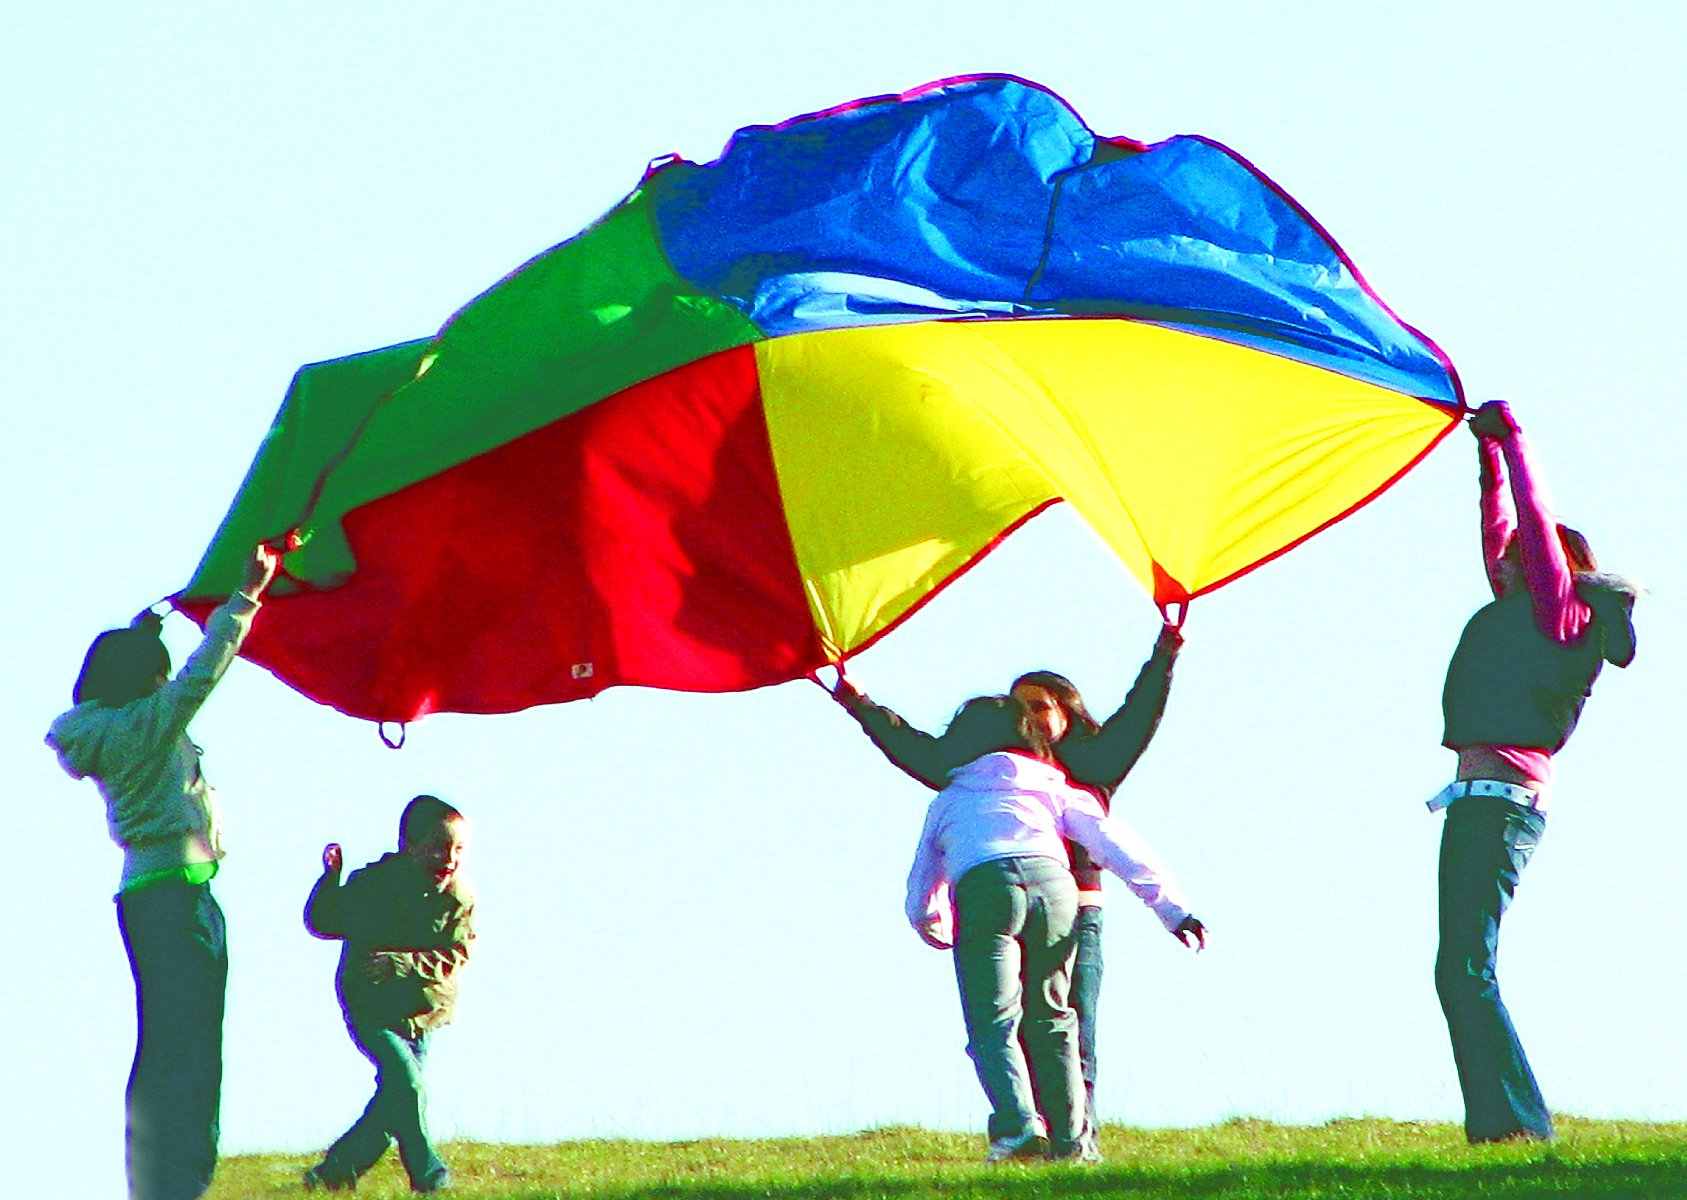 'Playscene' Children's Multicolored Parachute With 8 Handles, Indoor / Outdoor 12 FEET Parachute